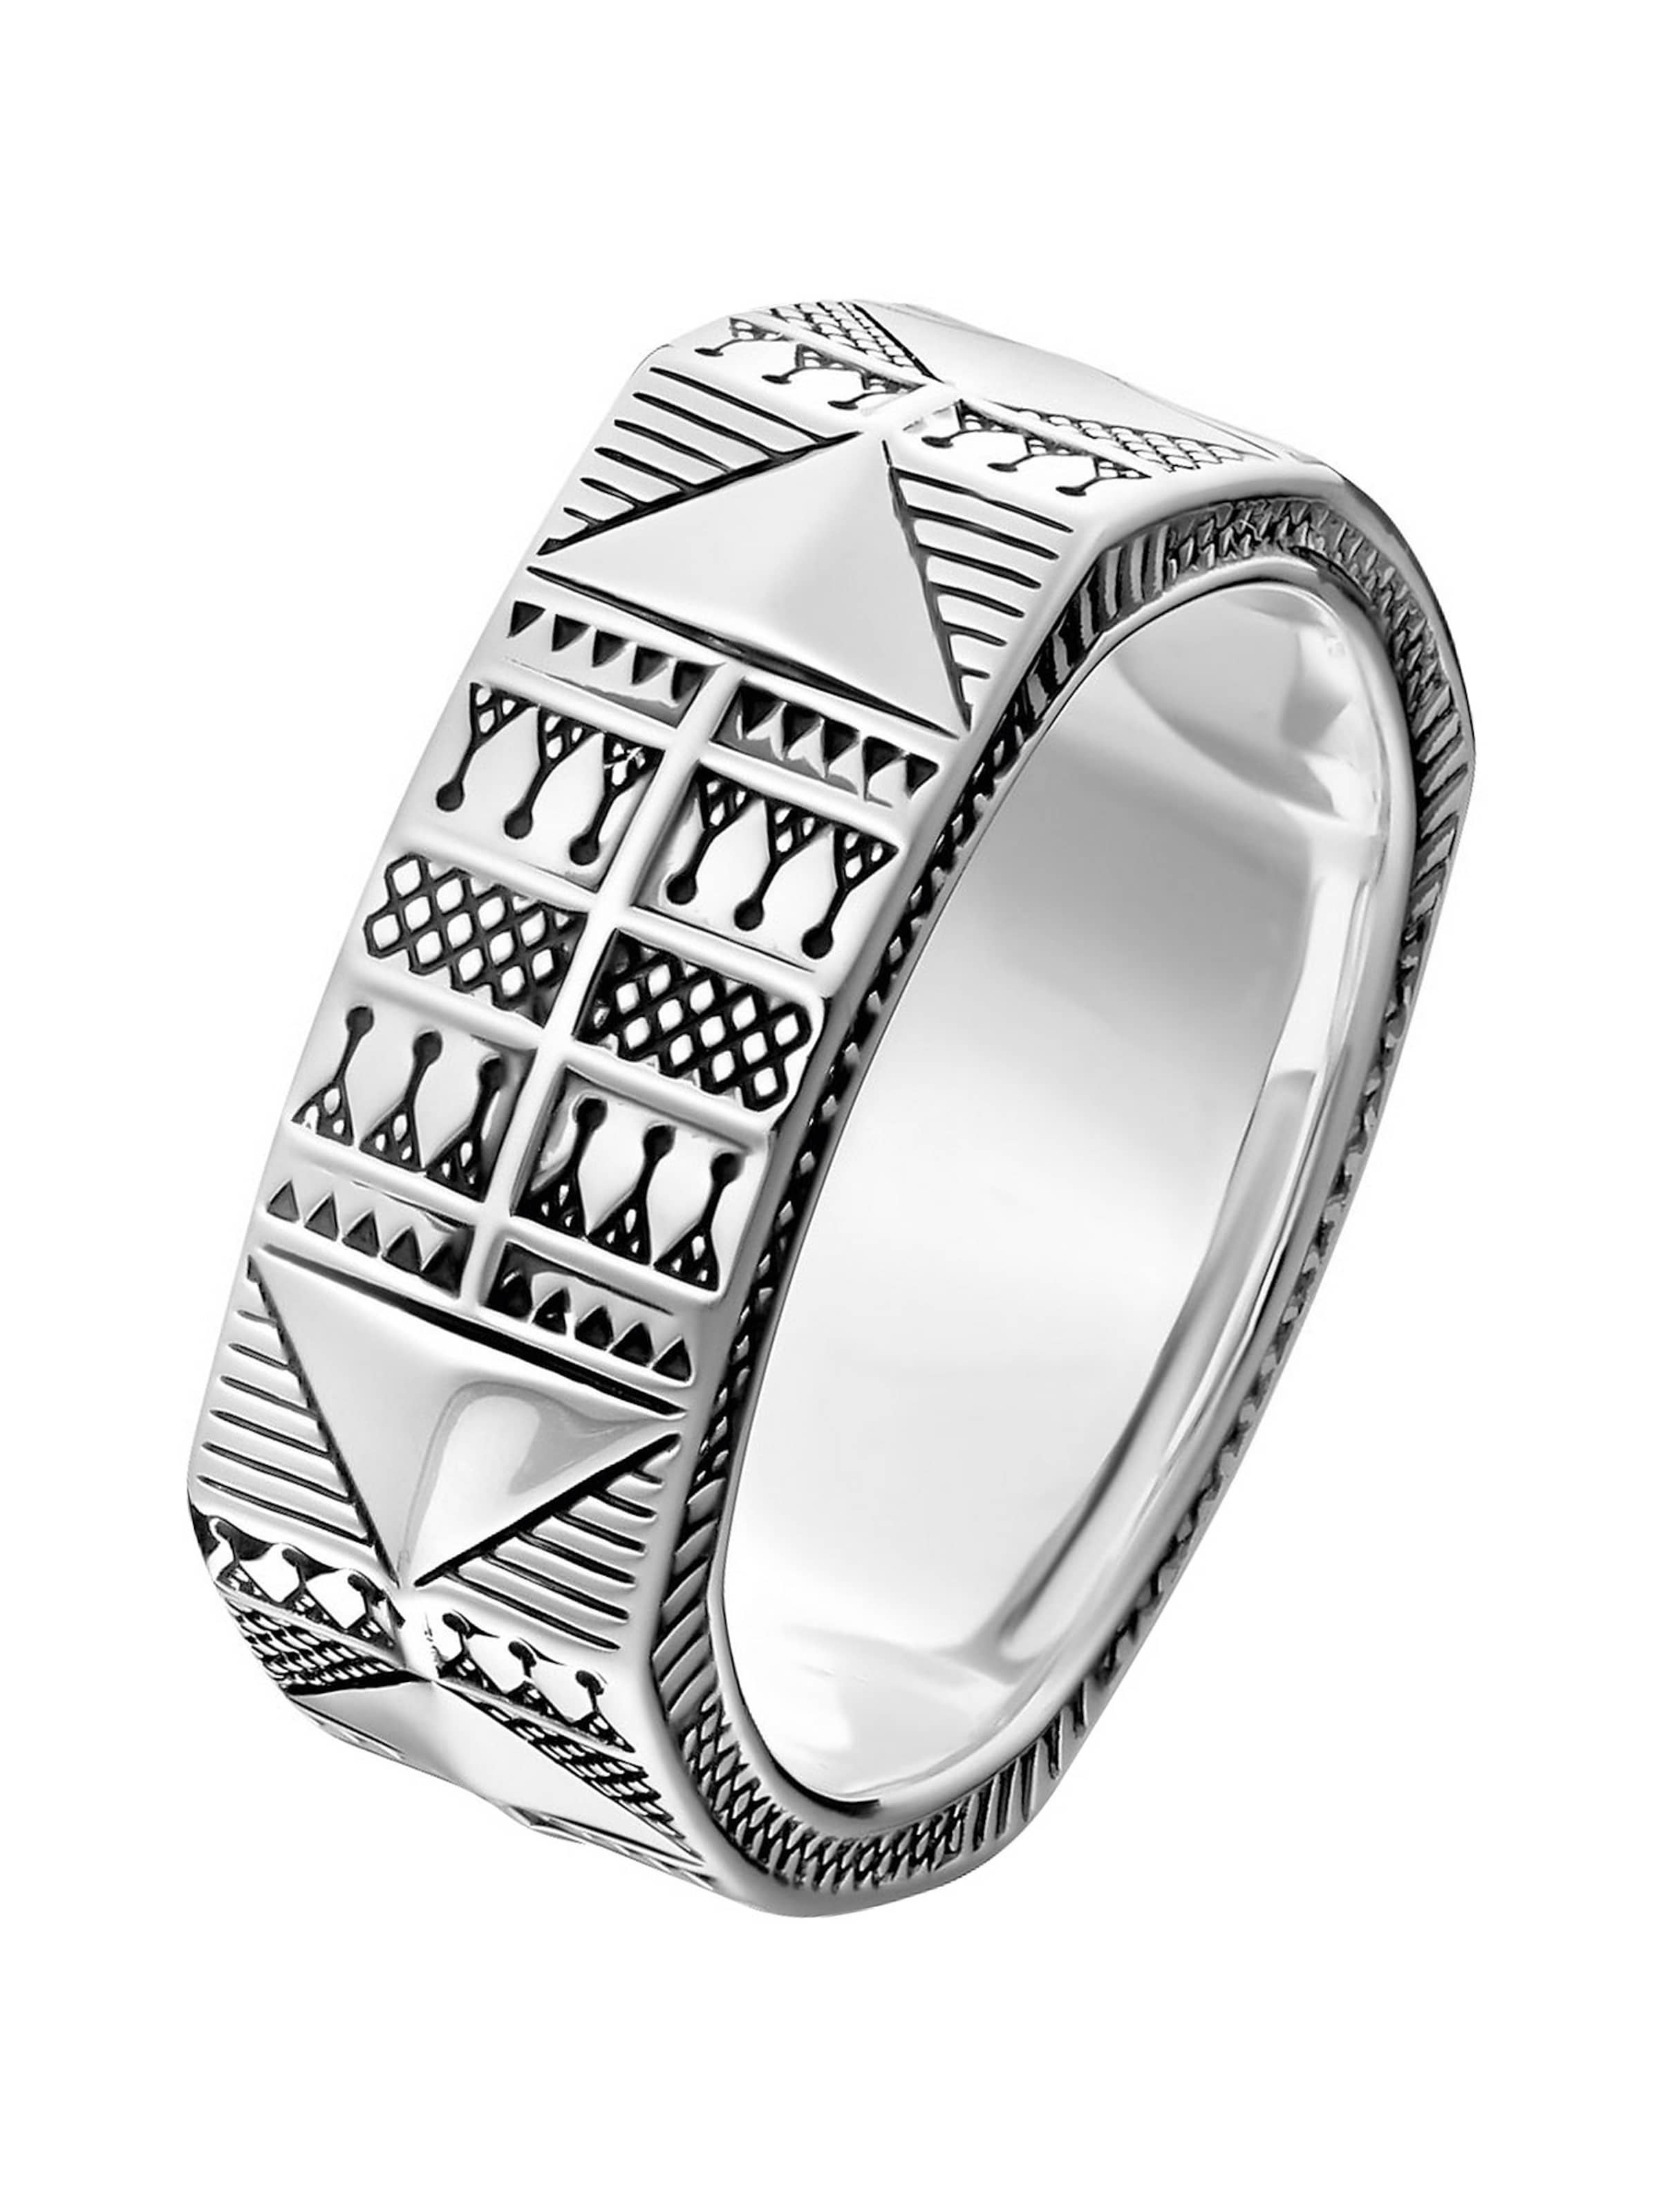 Ring Silber Ring Thomas Sabo In In Sabo Thomas Sabo Silber Ring Thomas Nmwn8OPv0y